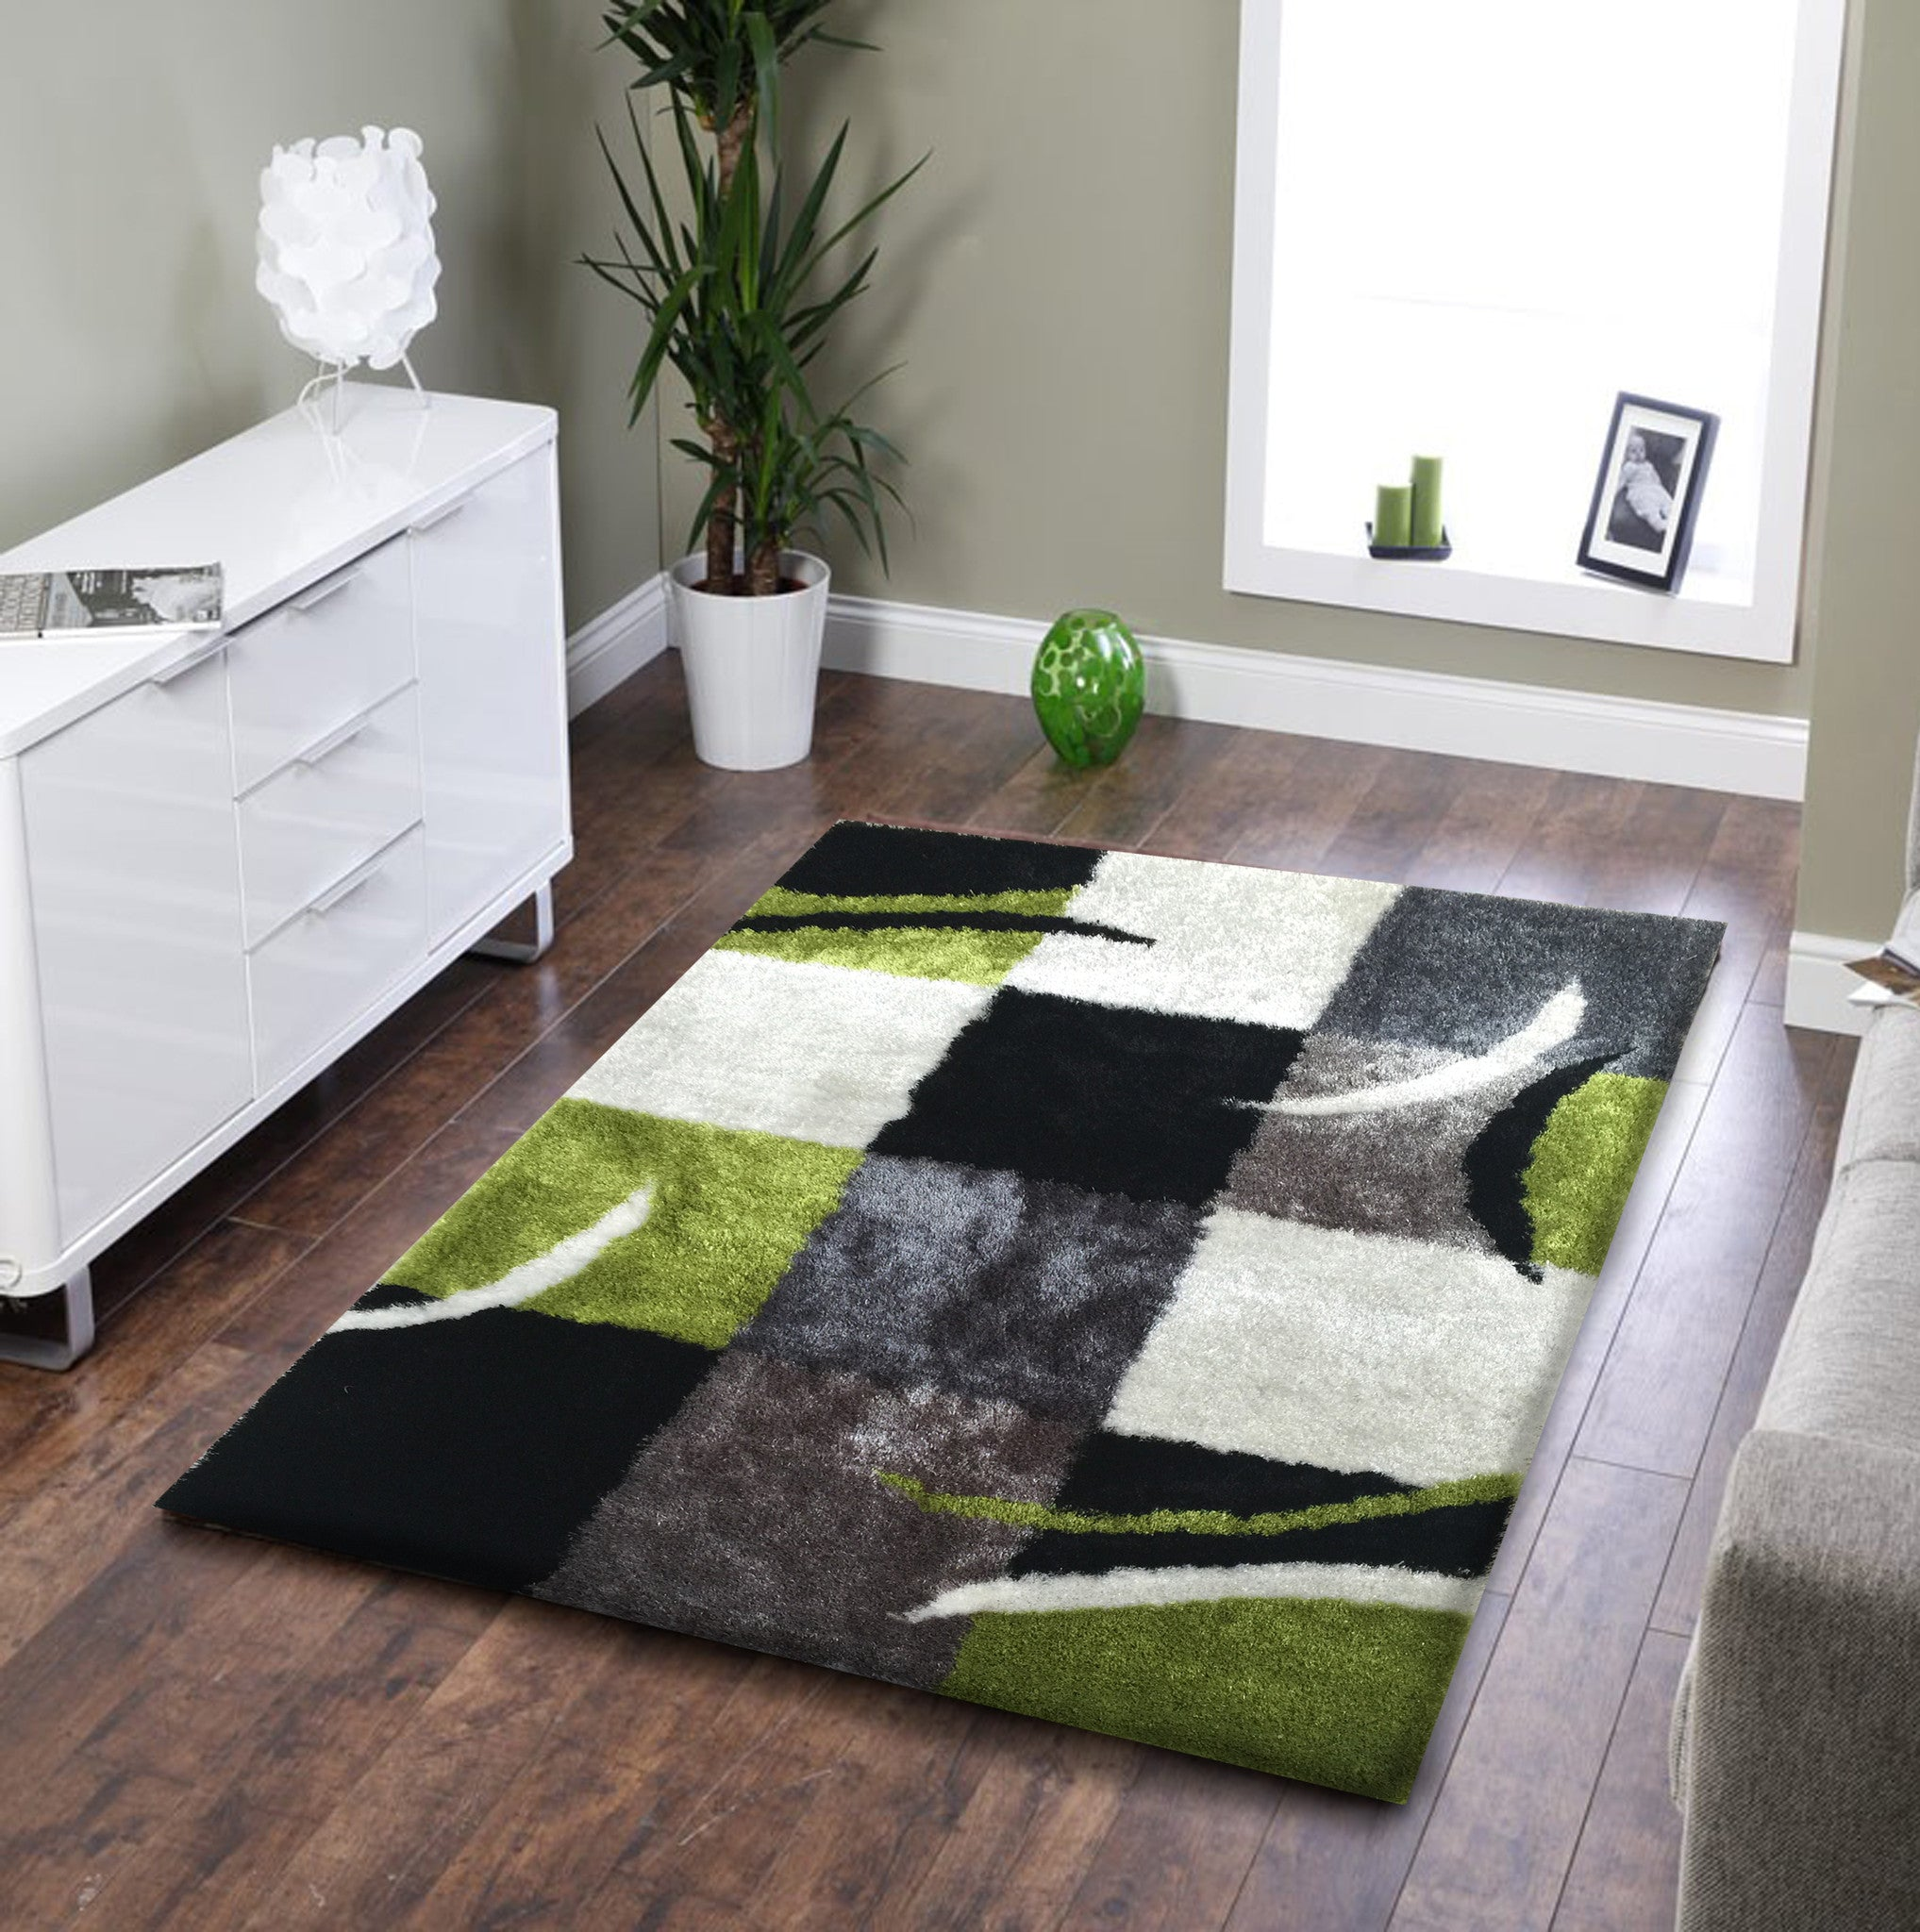 Shag Area Rugs For Living Room soft indoor bedroom shag area rug black with grey and green - rug